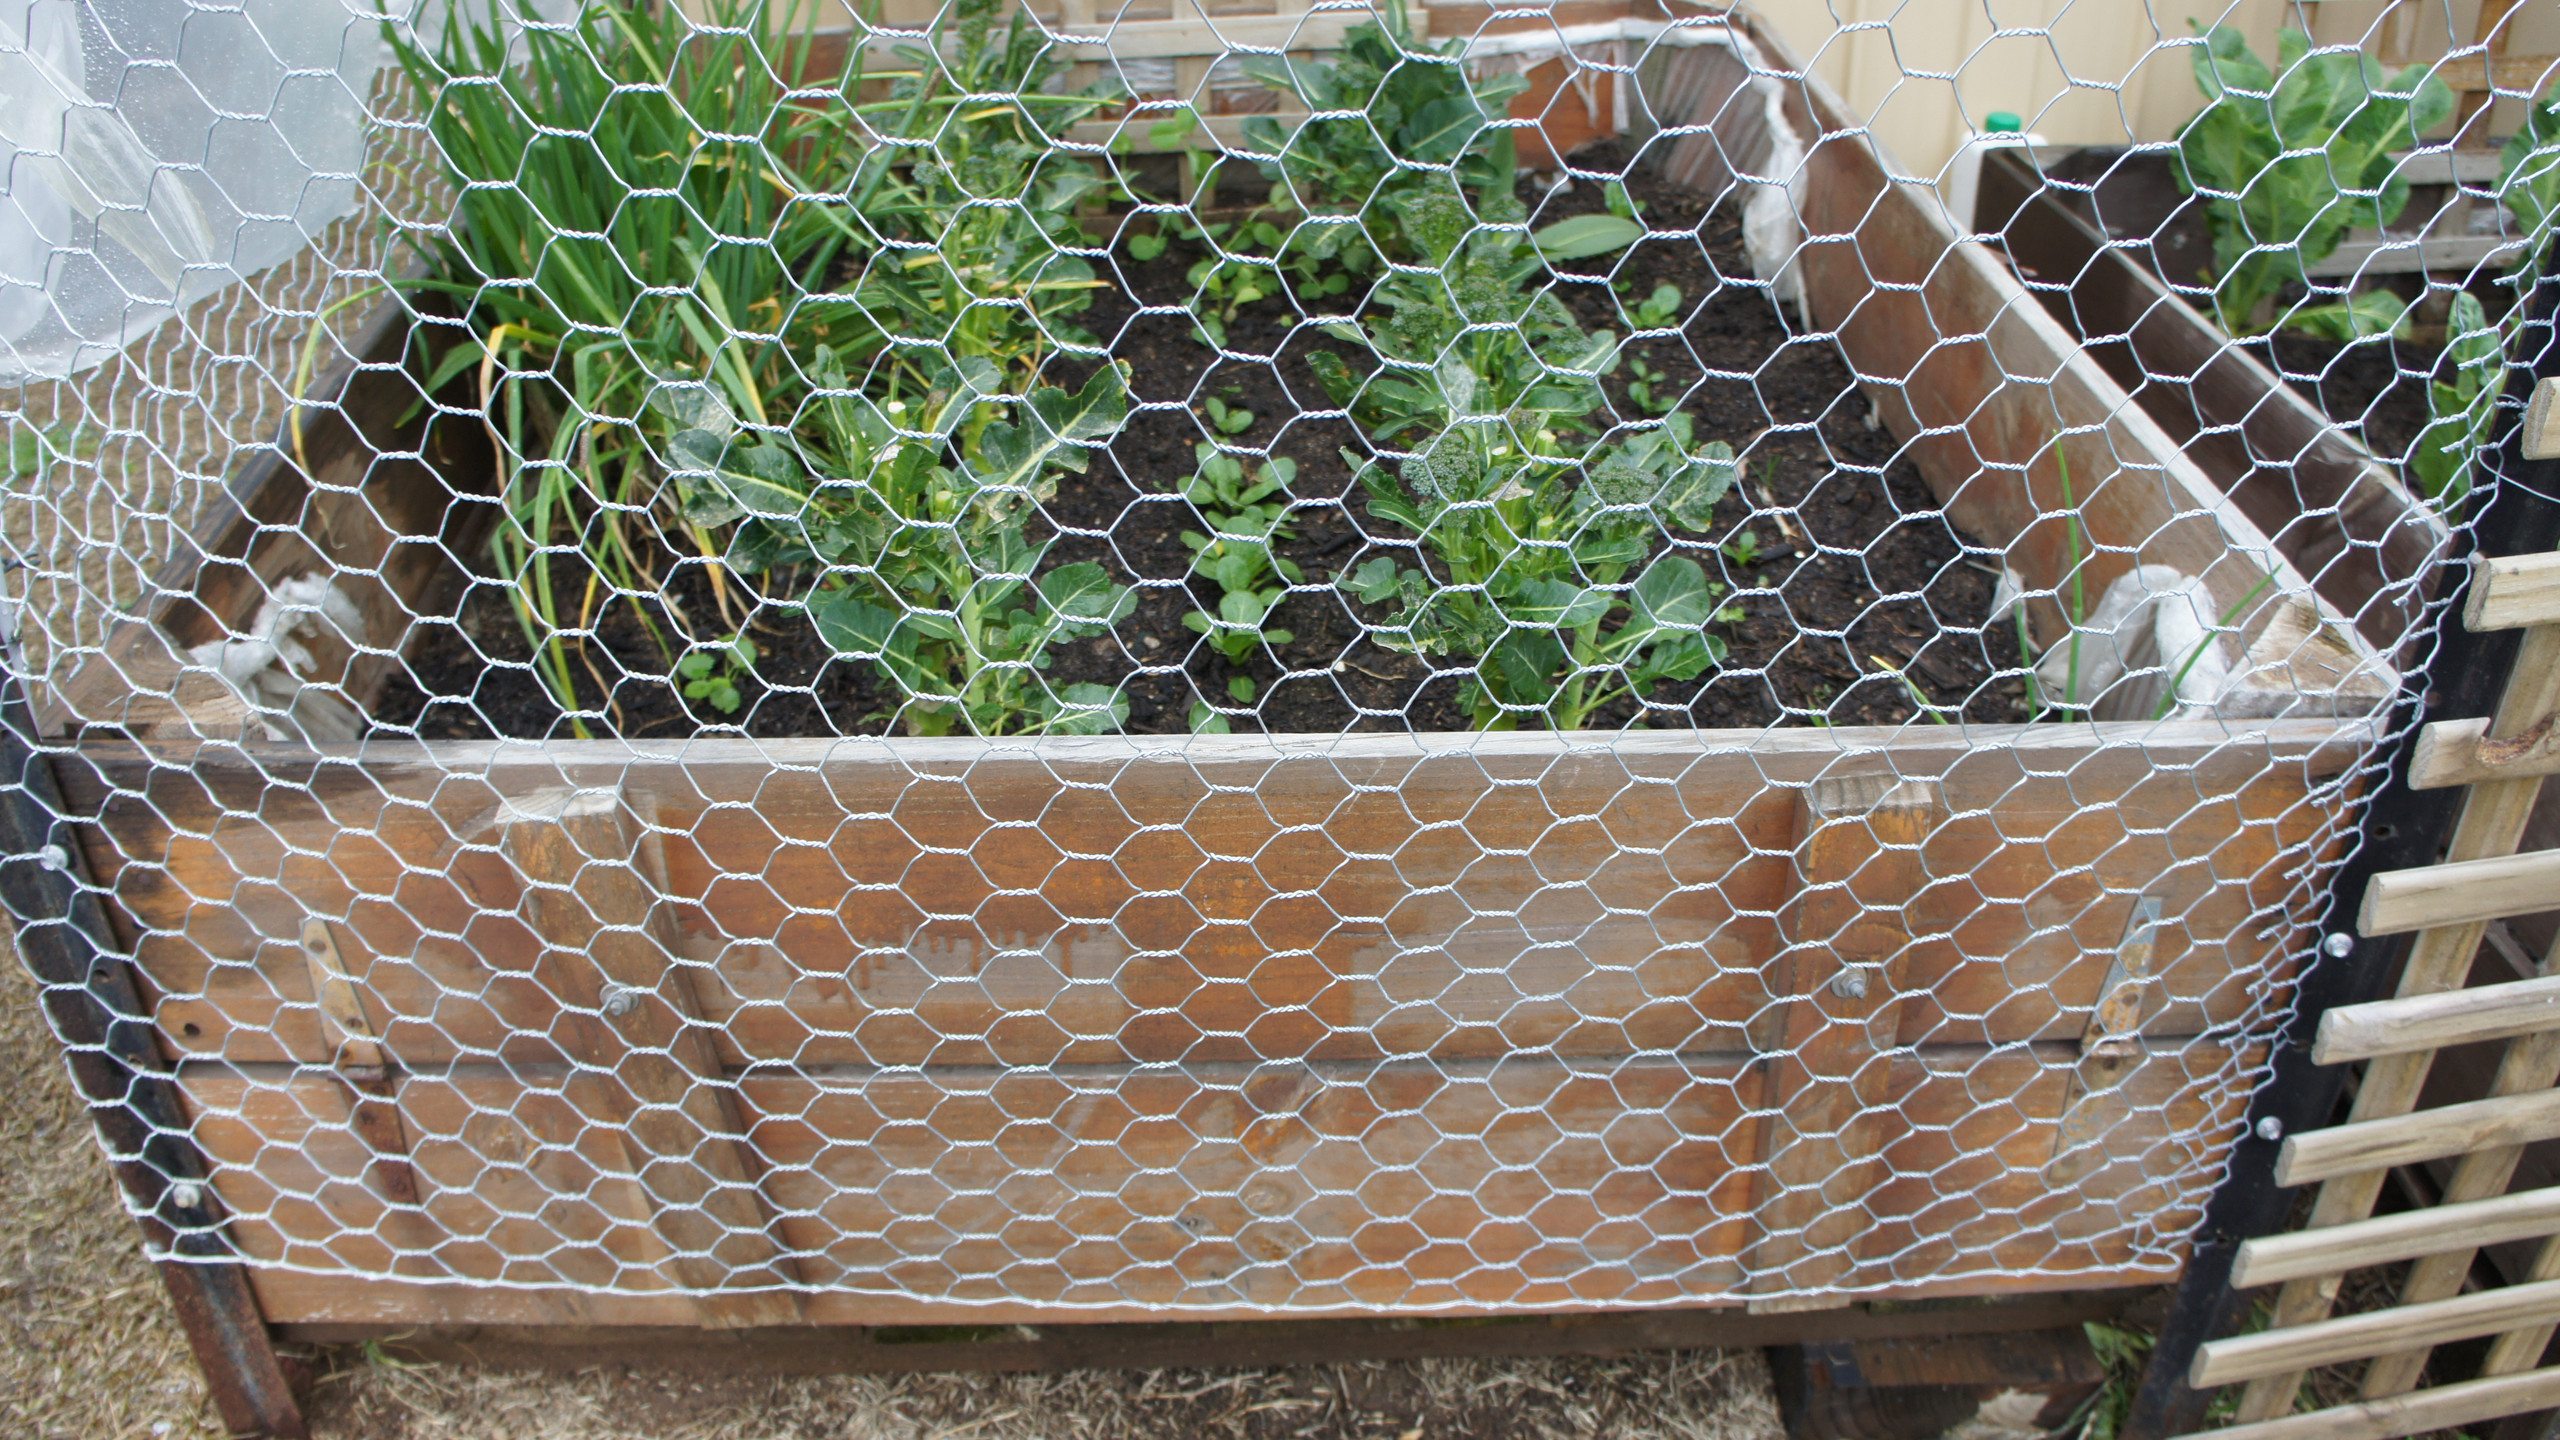 Upcycled fruit bins as veggie patch